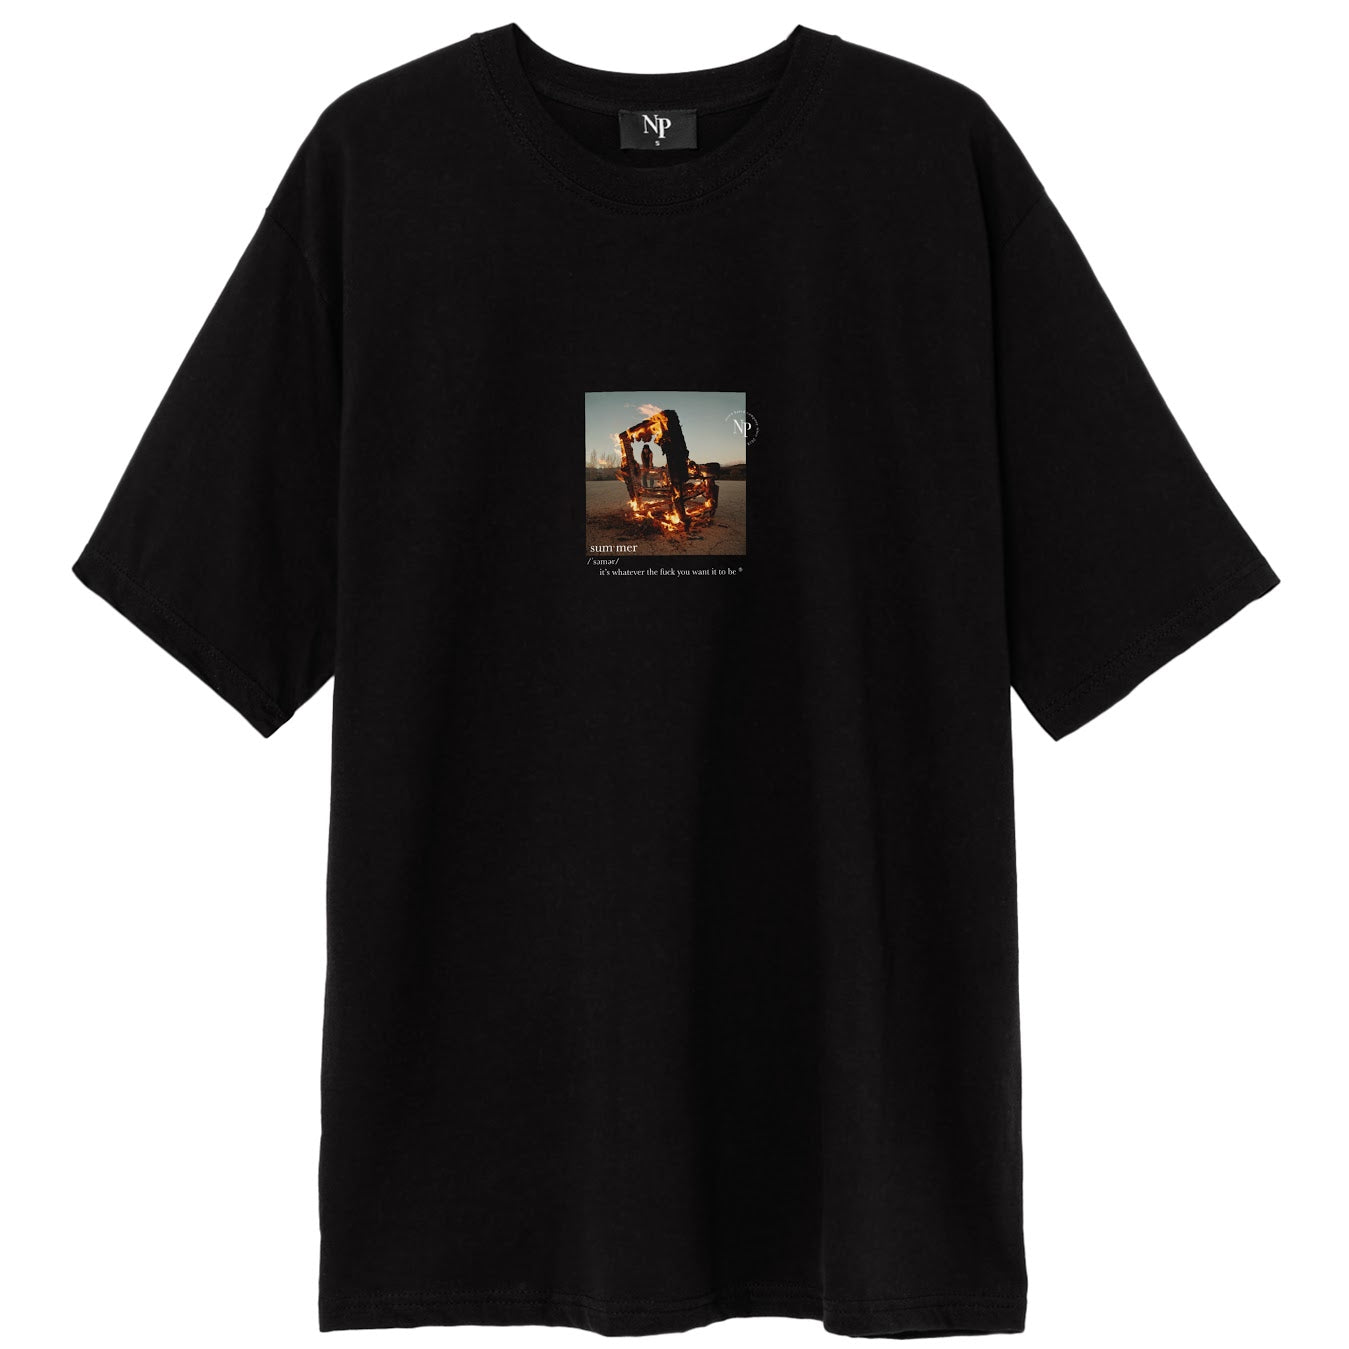 Summer definition t-shirt - NUDE PROJECT